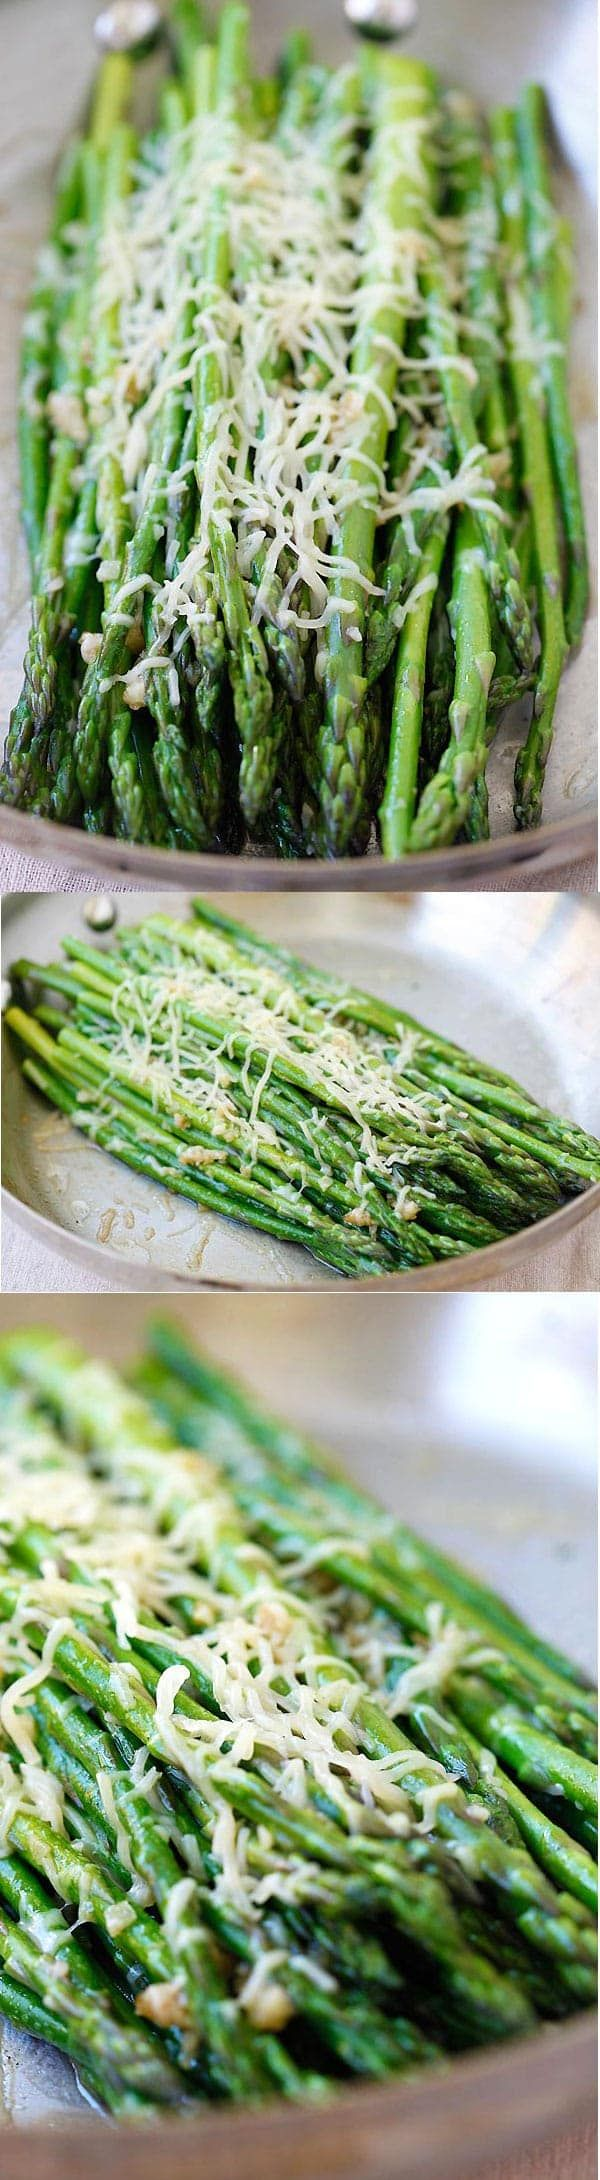 Parmesan Asparagus - easy sauteed asparagus with Parmesan cheese on a skillet. This recipe takes 10 minutes, so healthy and delicious | rasamalaysia.com